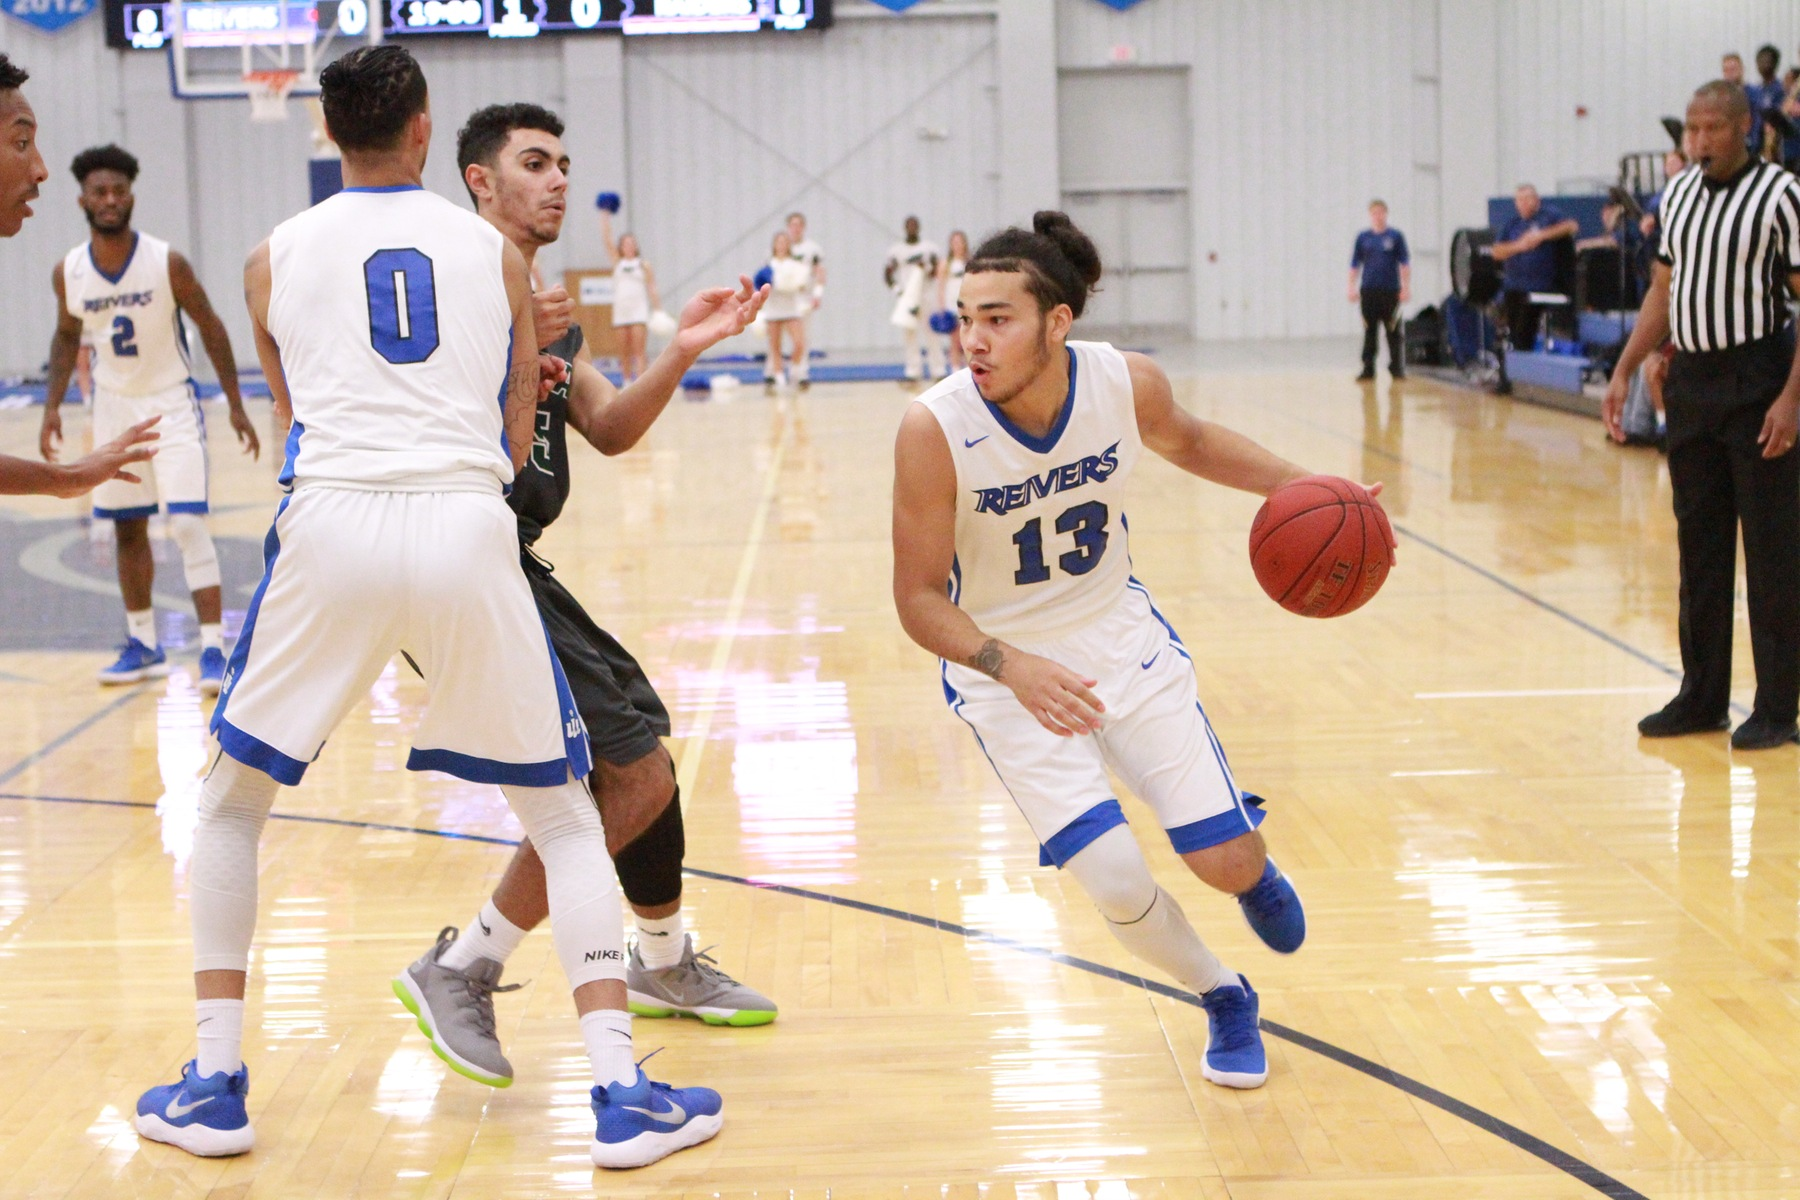 Patrick Dembley dished out a team high 6 assists to go along with his 3/7 shooting for behind the three point arch as Iowa Western avenged their previous defeat to State Fair with a emphatic 94-70 victory Saturday afternoon (2/10/18).